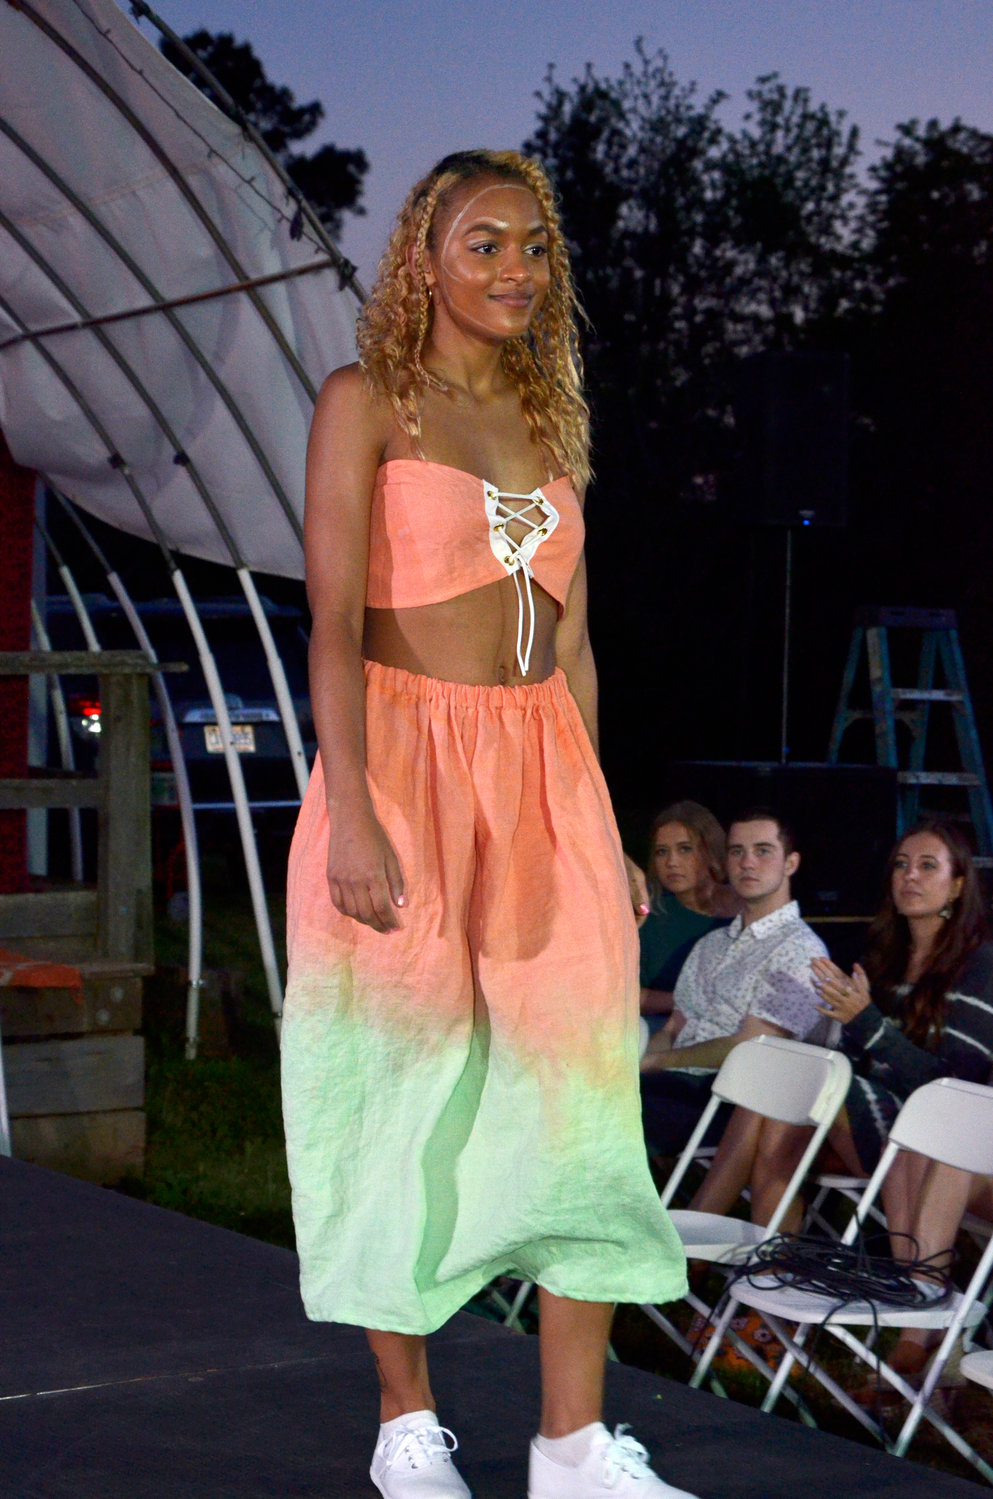 Connections to previous generations are seen in the tie-die throwbacks offered in one designers collection Saturday at the East Coast Runway Saturday night in Pittsboro.